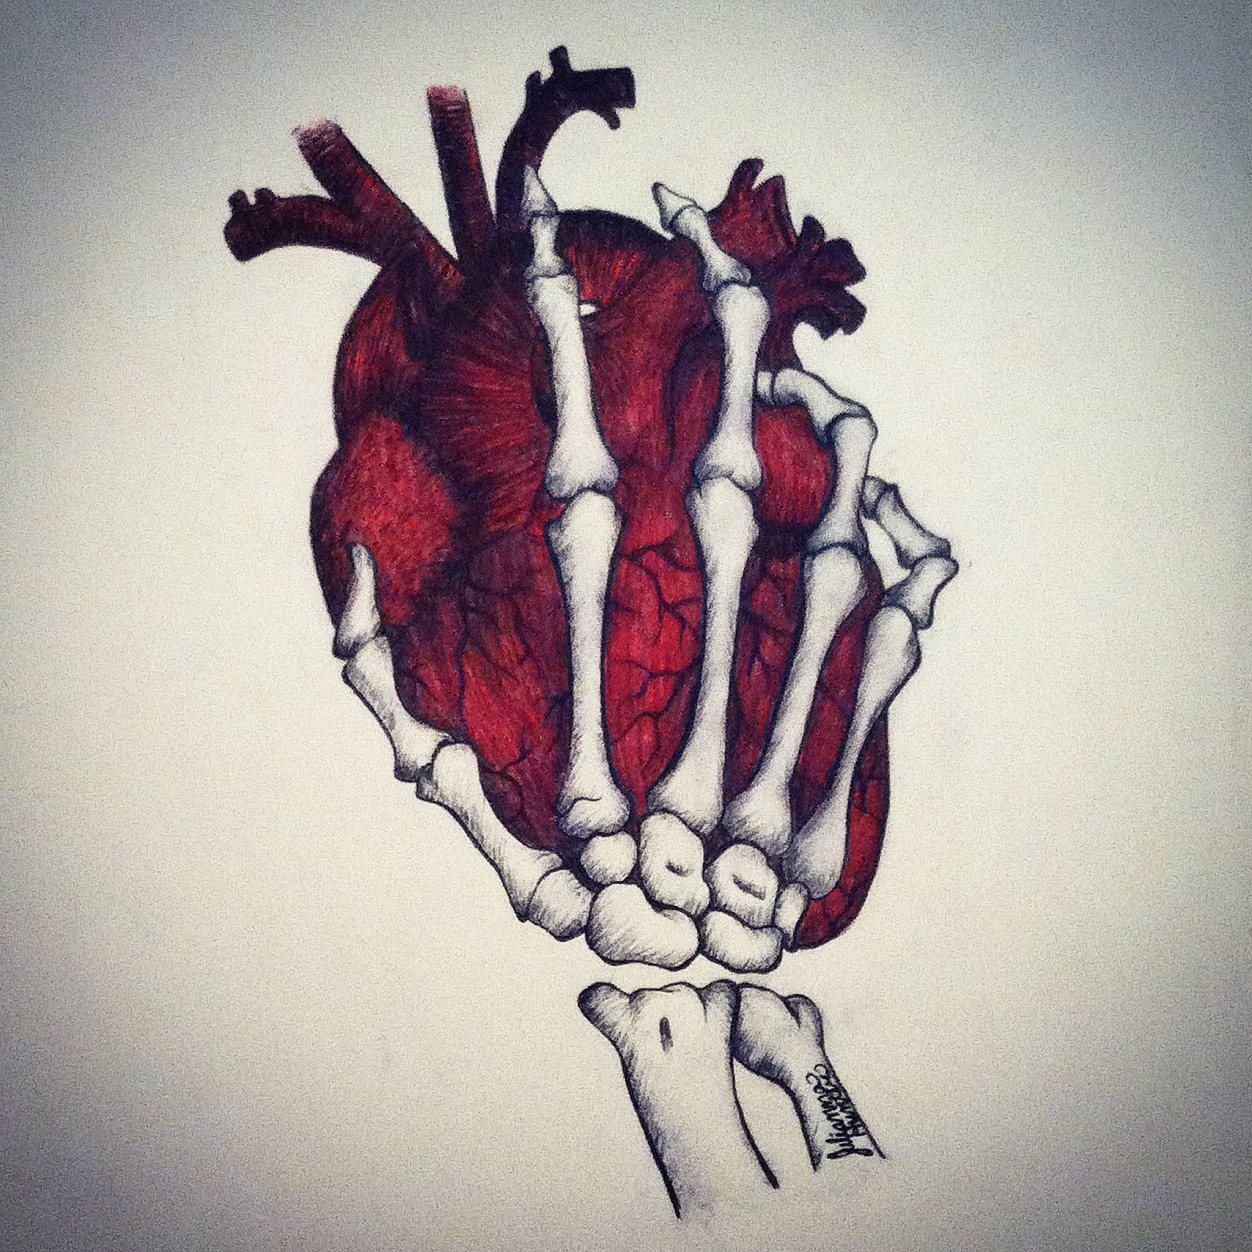 1252x1252 The Beating Heart Of A Skeleton By Julianna Hunter. A Pen Drawing